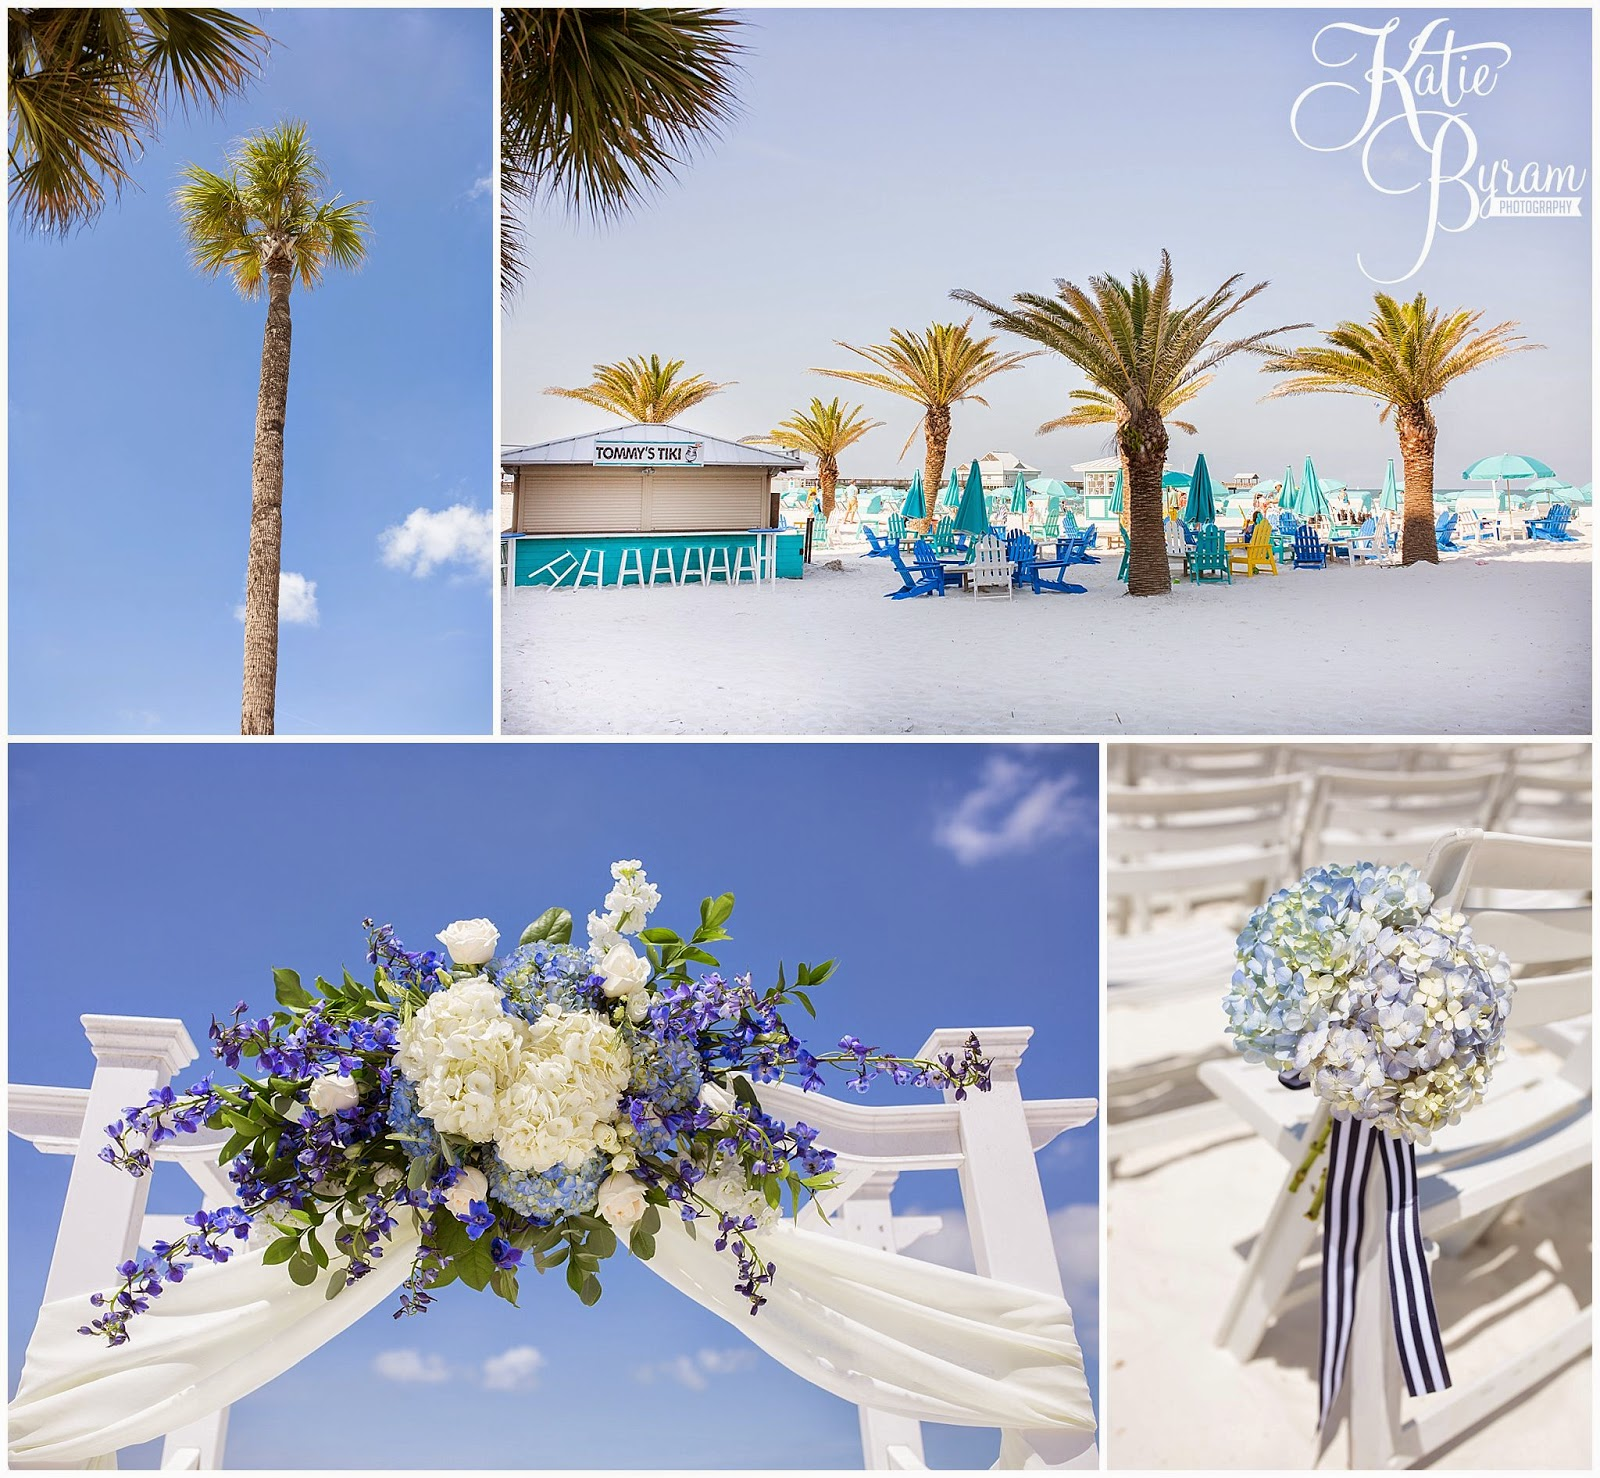 palm trees wedding, flower arch, destination wedding, clearwater beach wedding, hilton clearwater beach wedding, katie byram photography, florida wedding